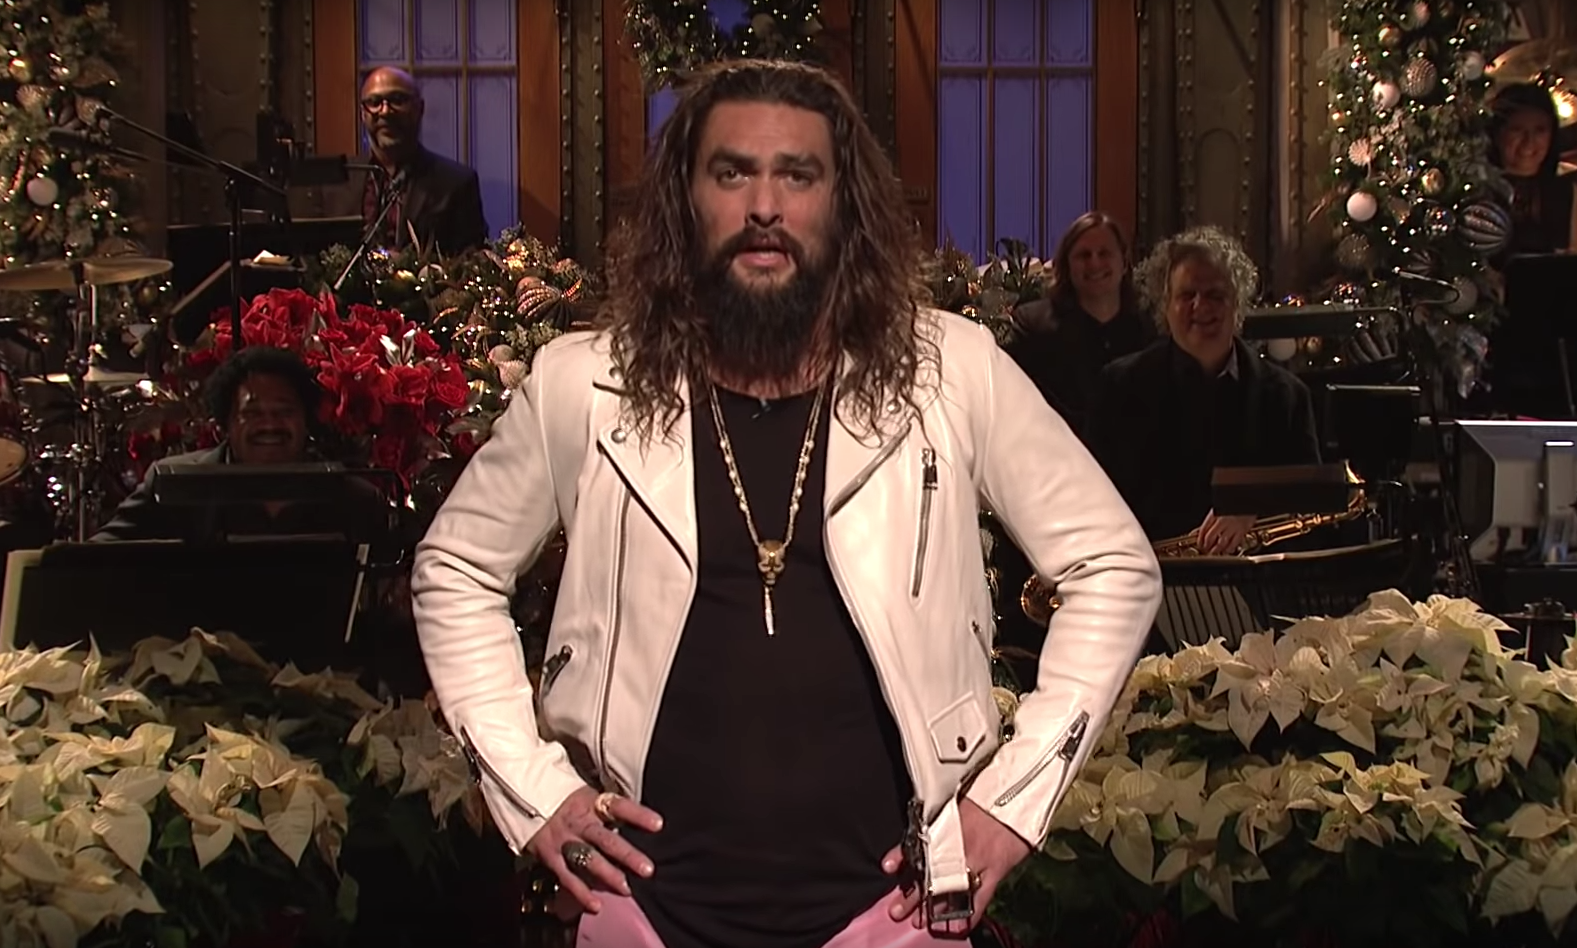 Jason Momoa on 'SNL': 3 Sketches You Have to See